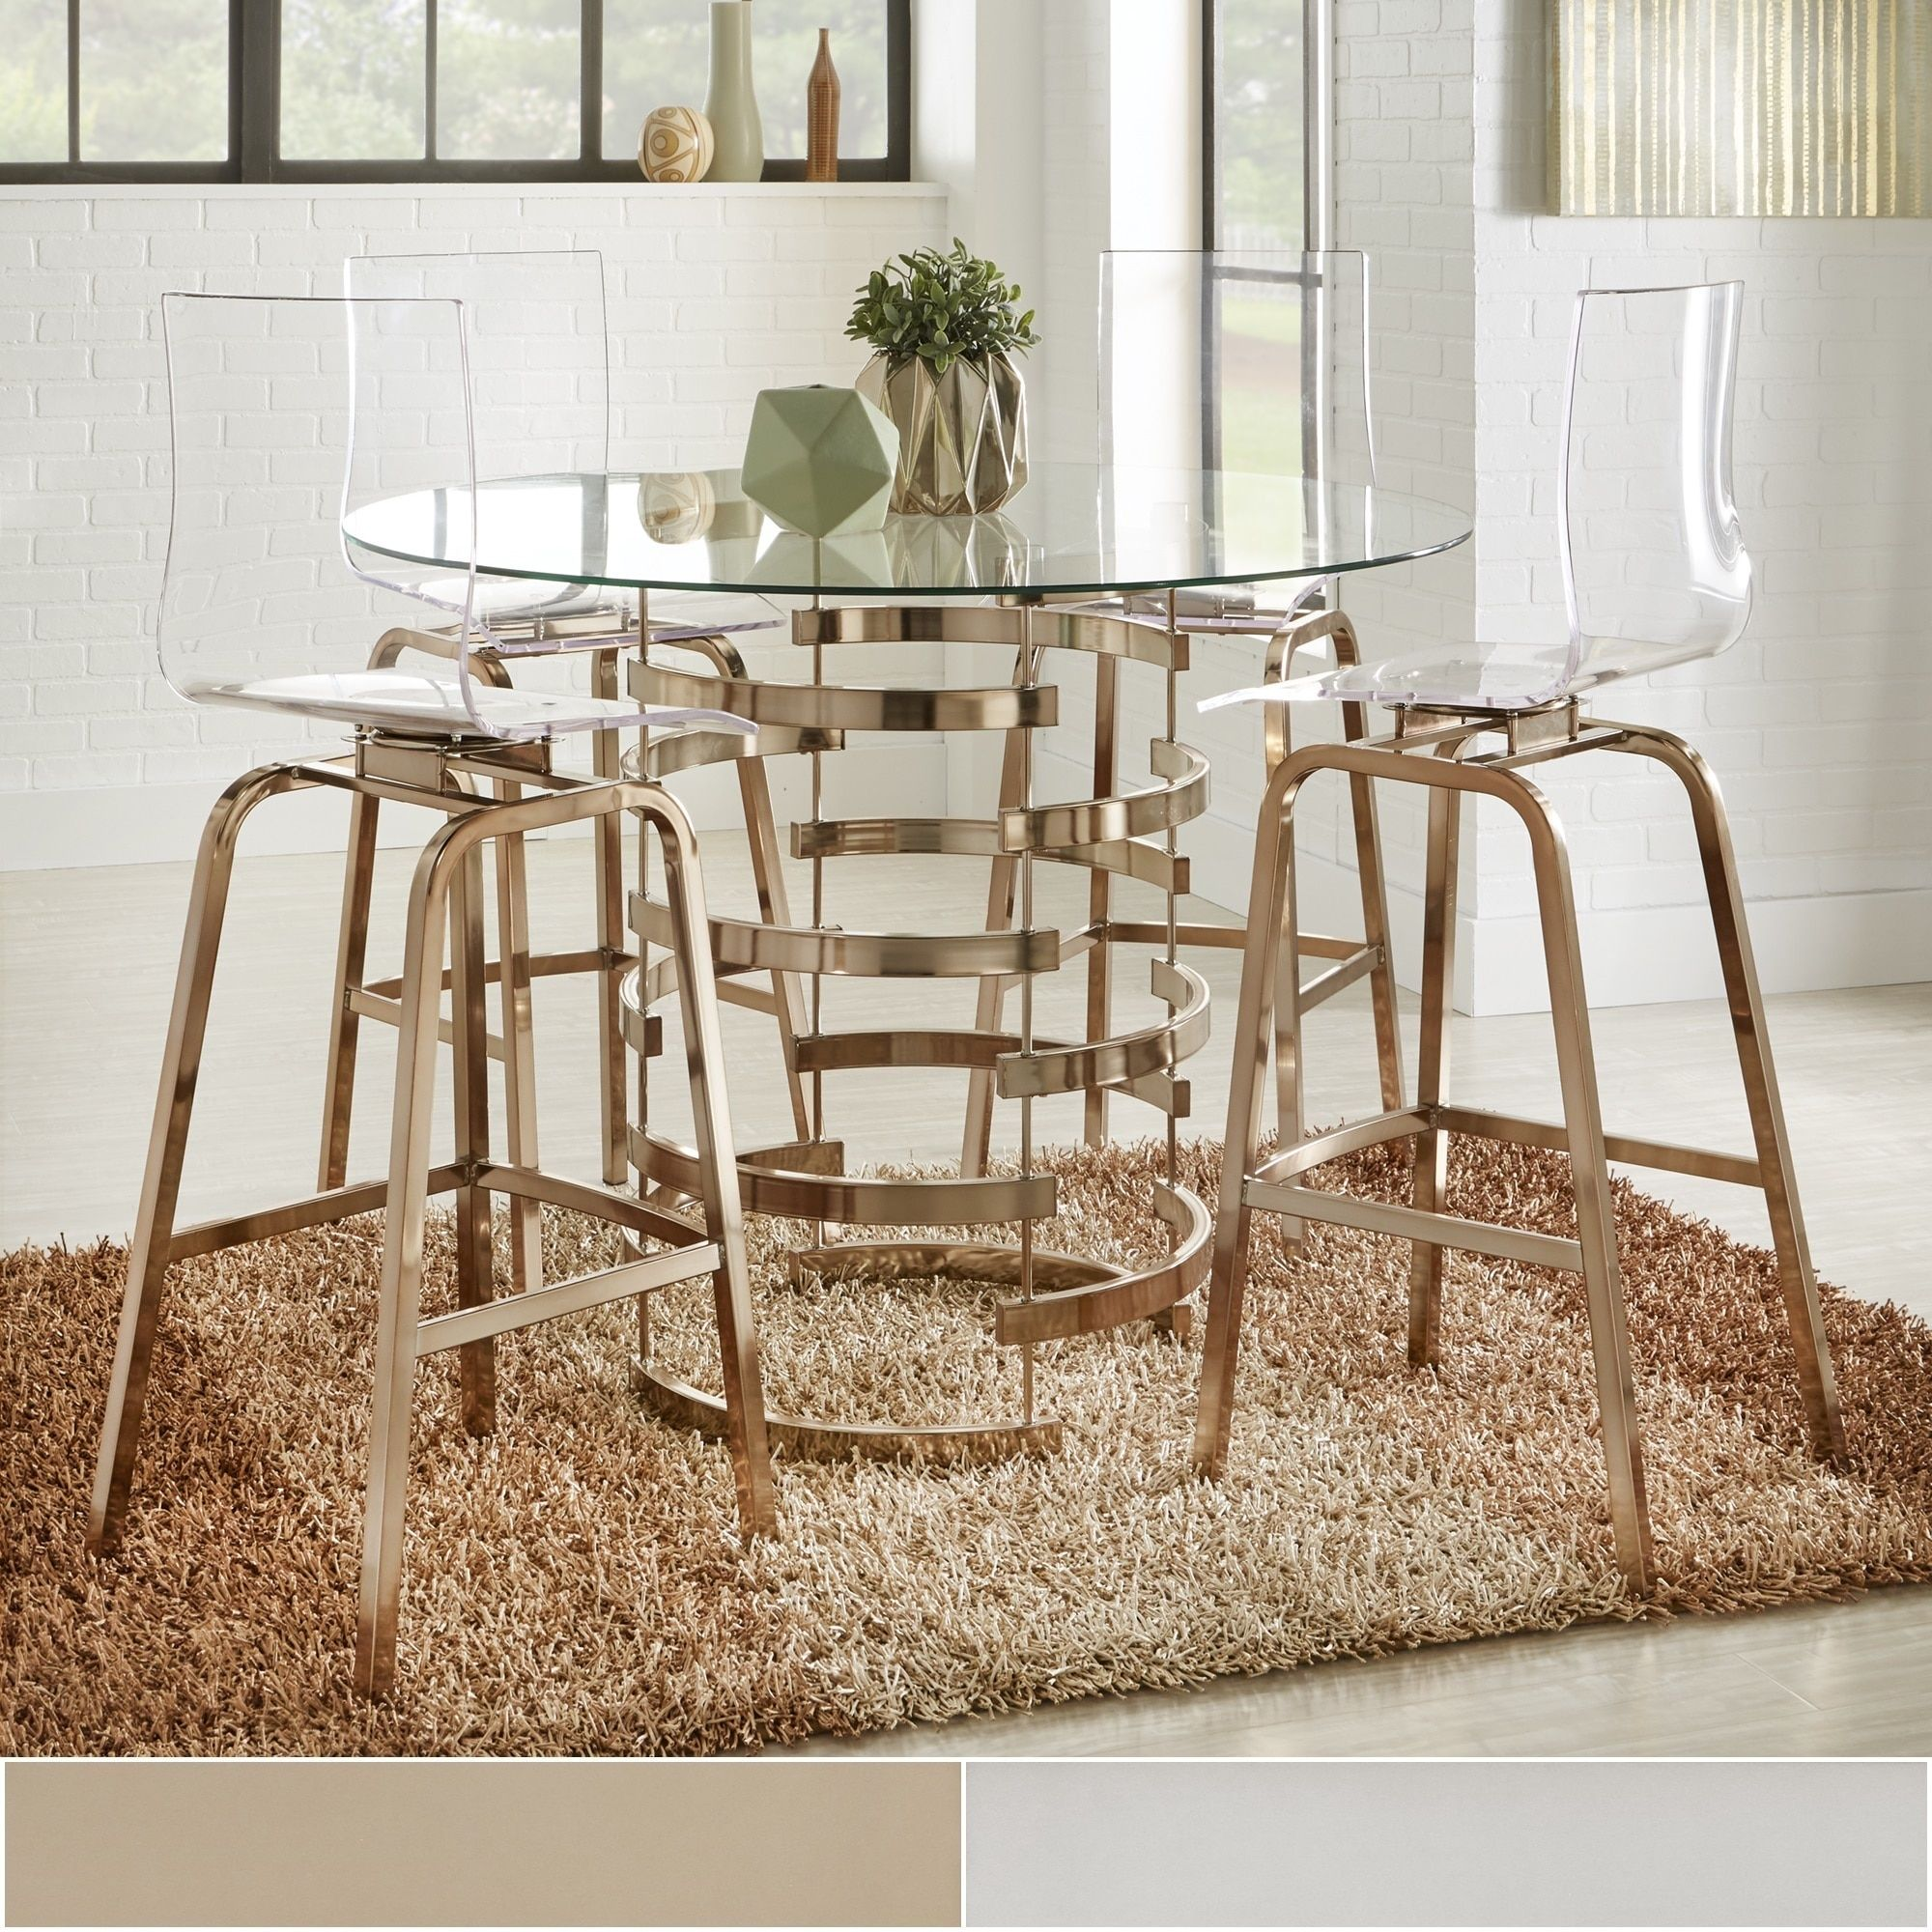 Nova Round Glass Top Vortex Iron Base Counter Height Table by Inspire Q  (Chrome Counter Height Dining table), Silver